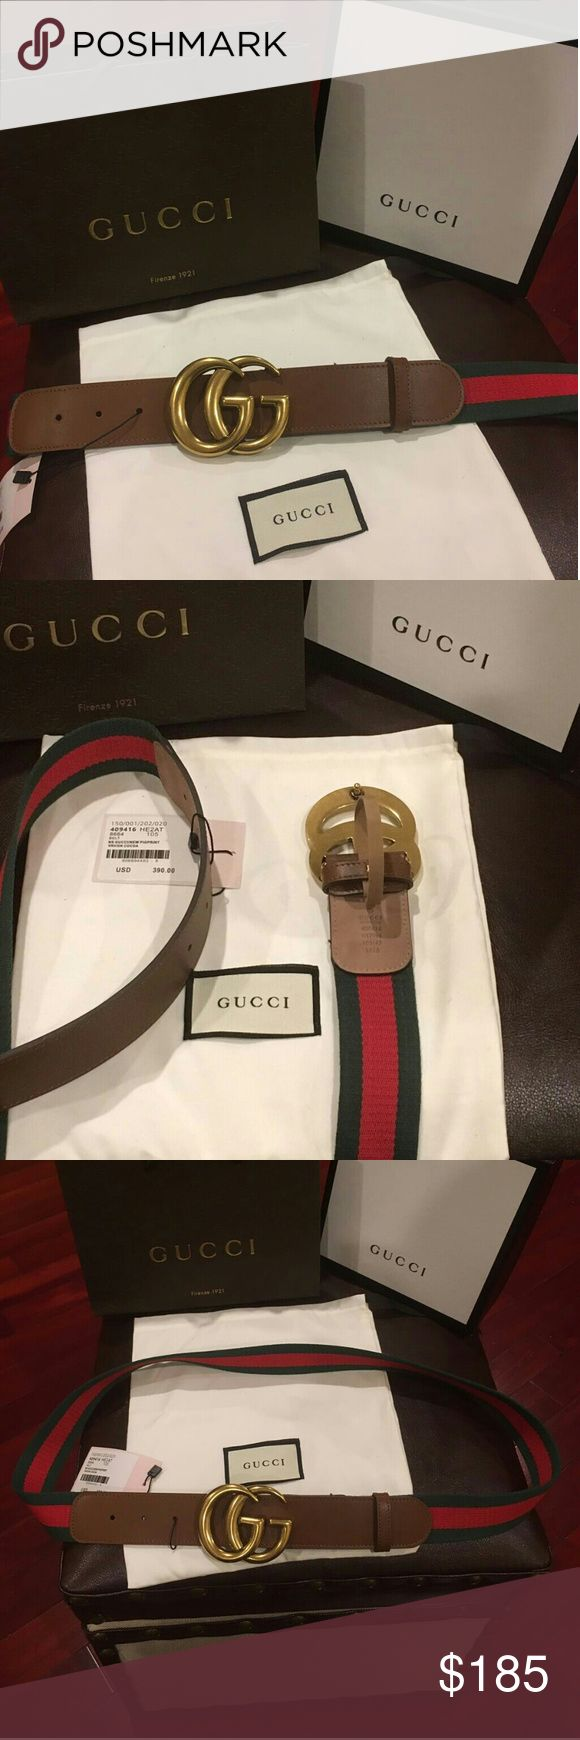 NWT New Gucci Web Belt with Double G Buckle 100% Authentic Signature Web Canvas Belt with a textured leather trim and double G buckle looks like vantage  Buckle is Antique brass toned hardware like a Gold look into it Green and Red cotton canvas Web with brown leather detail Double G buckle These Gucci belts runs in different sizes please willy ship within 24hours very fast shipping Please message me with what size you need thank you?????? Gucci Accessories Belts